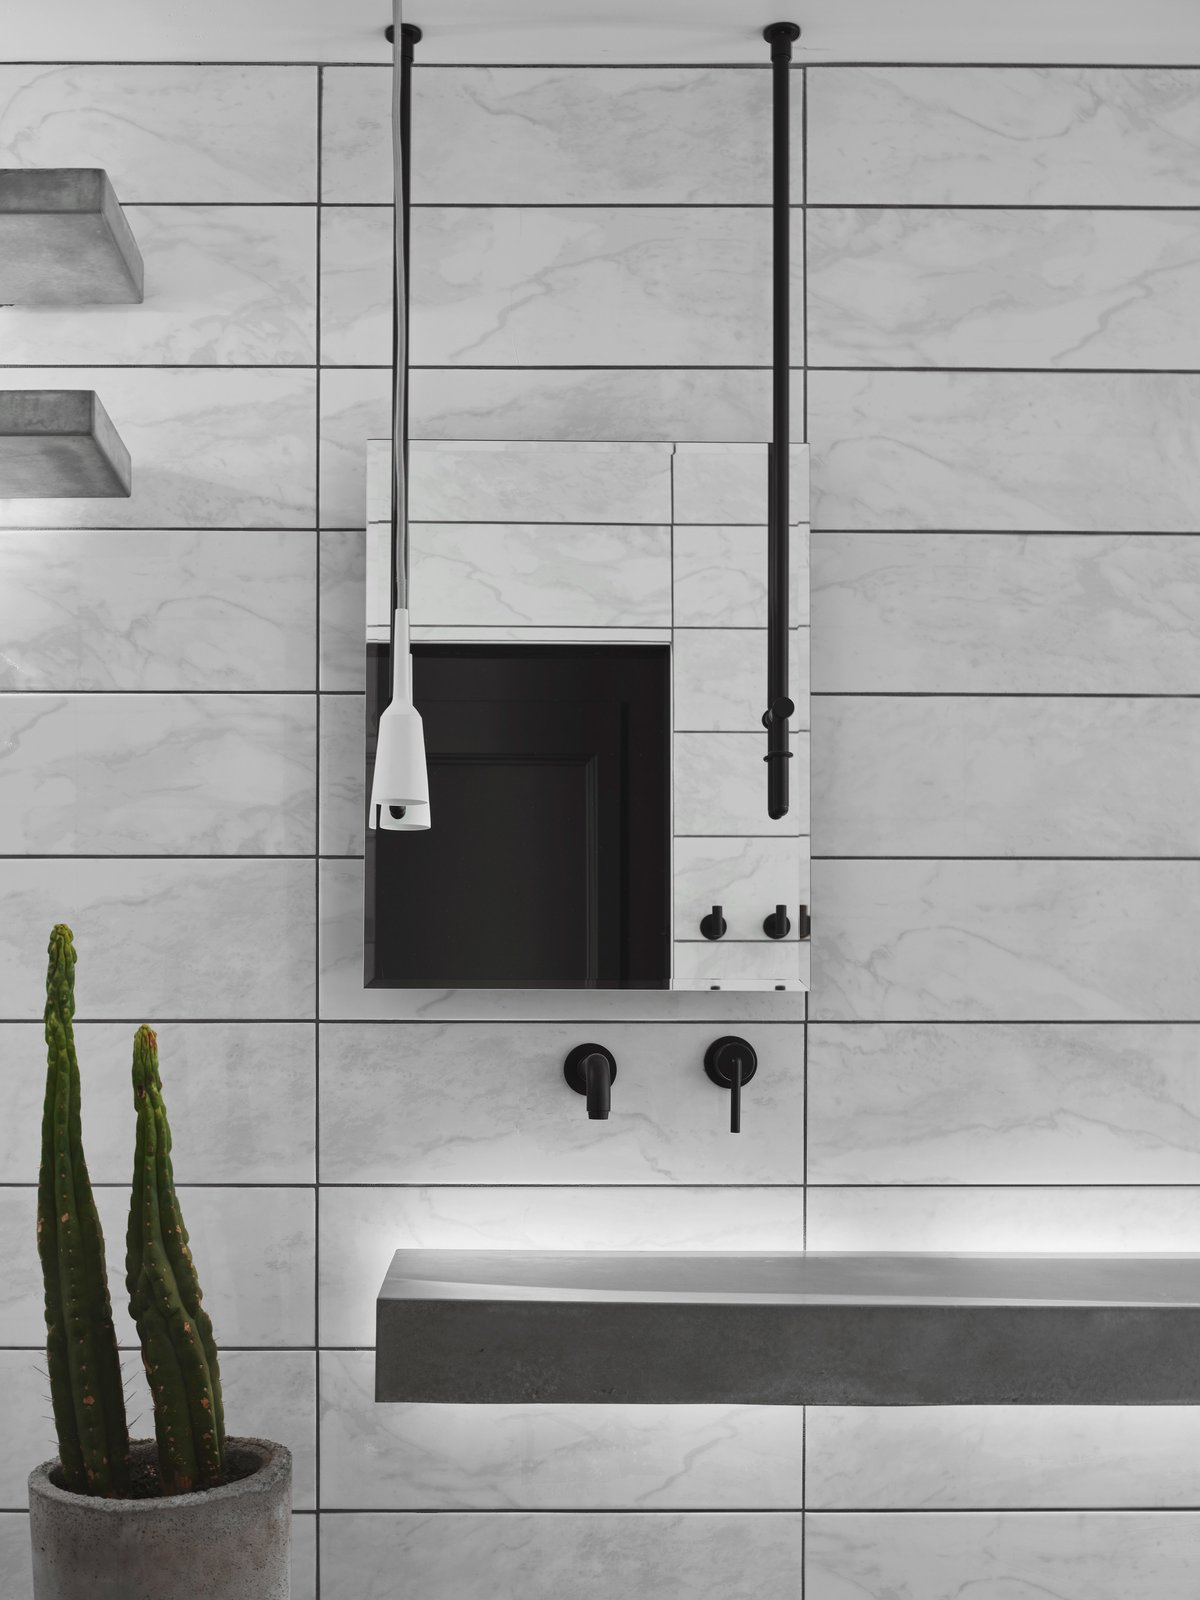 Bath Room, Wall Mount Sink, and Concrete Counter The floating drain-less custom sink with led backlighting with matching corner shelves by Compound Concrete. Paired with hanging mirror and pendant outlet.  Details